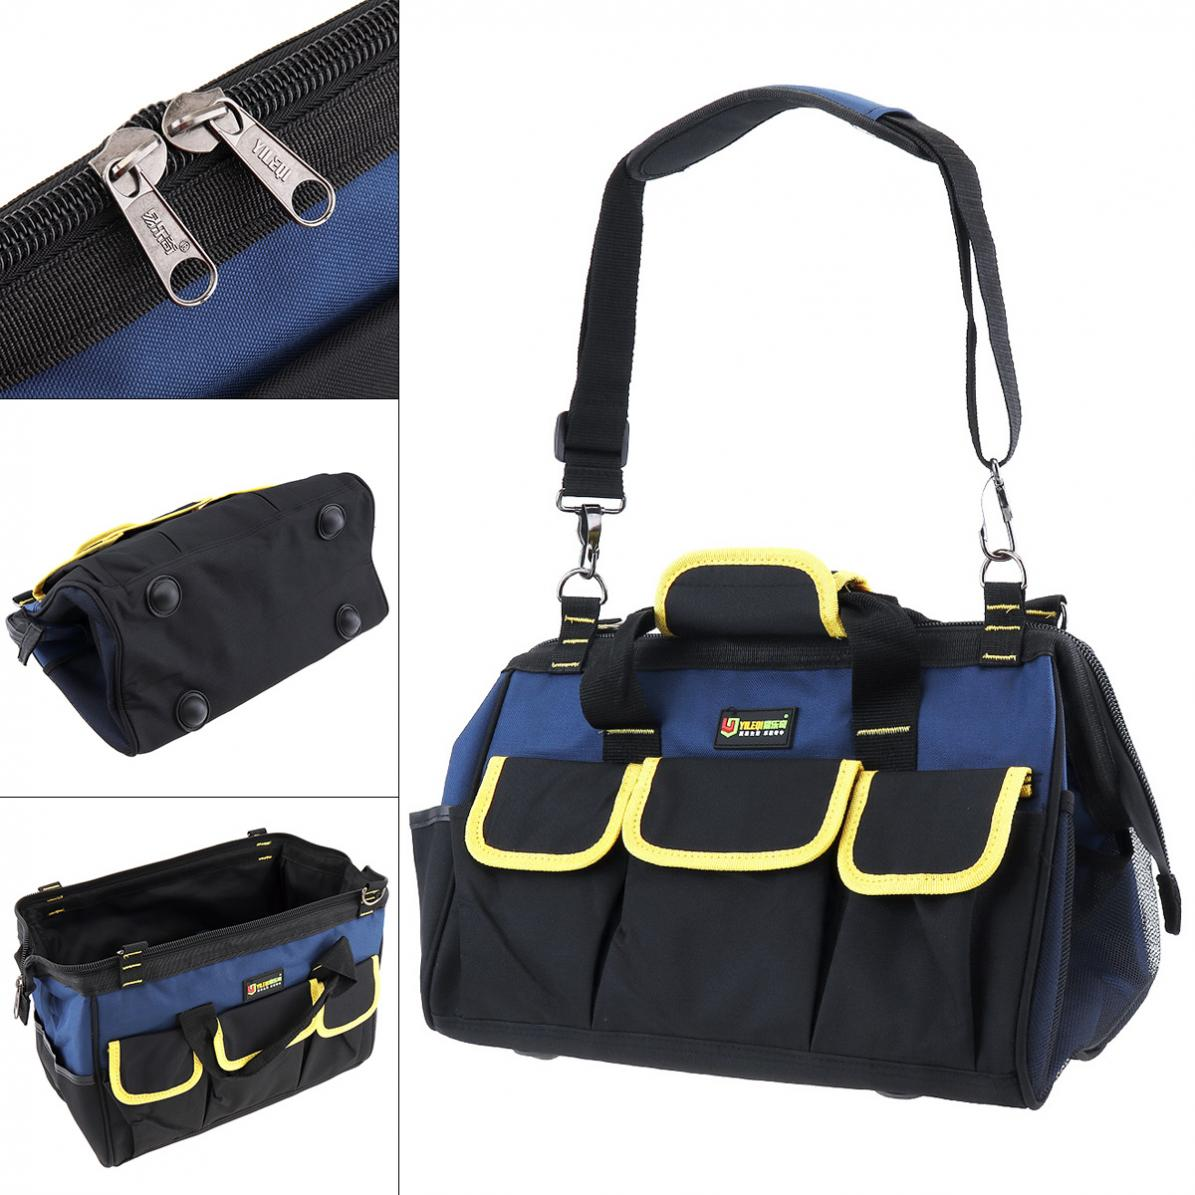 Multifunctional Oxford Cloth Waterproof Hand Shoulder Dual-purpose Tool Bag With 21 Pockets And Strap For Maintenance Tools